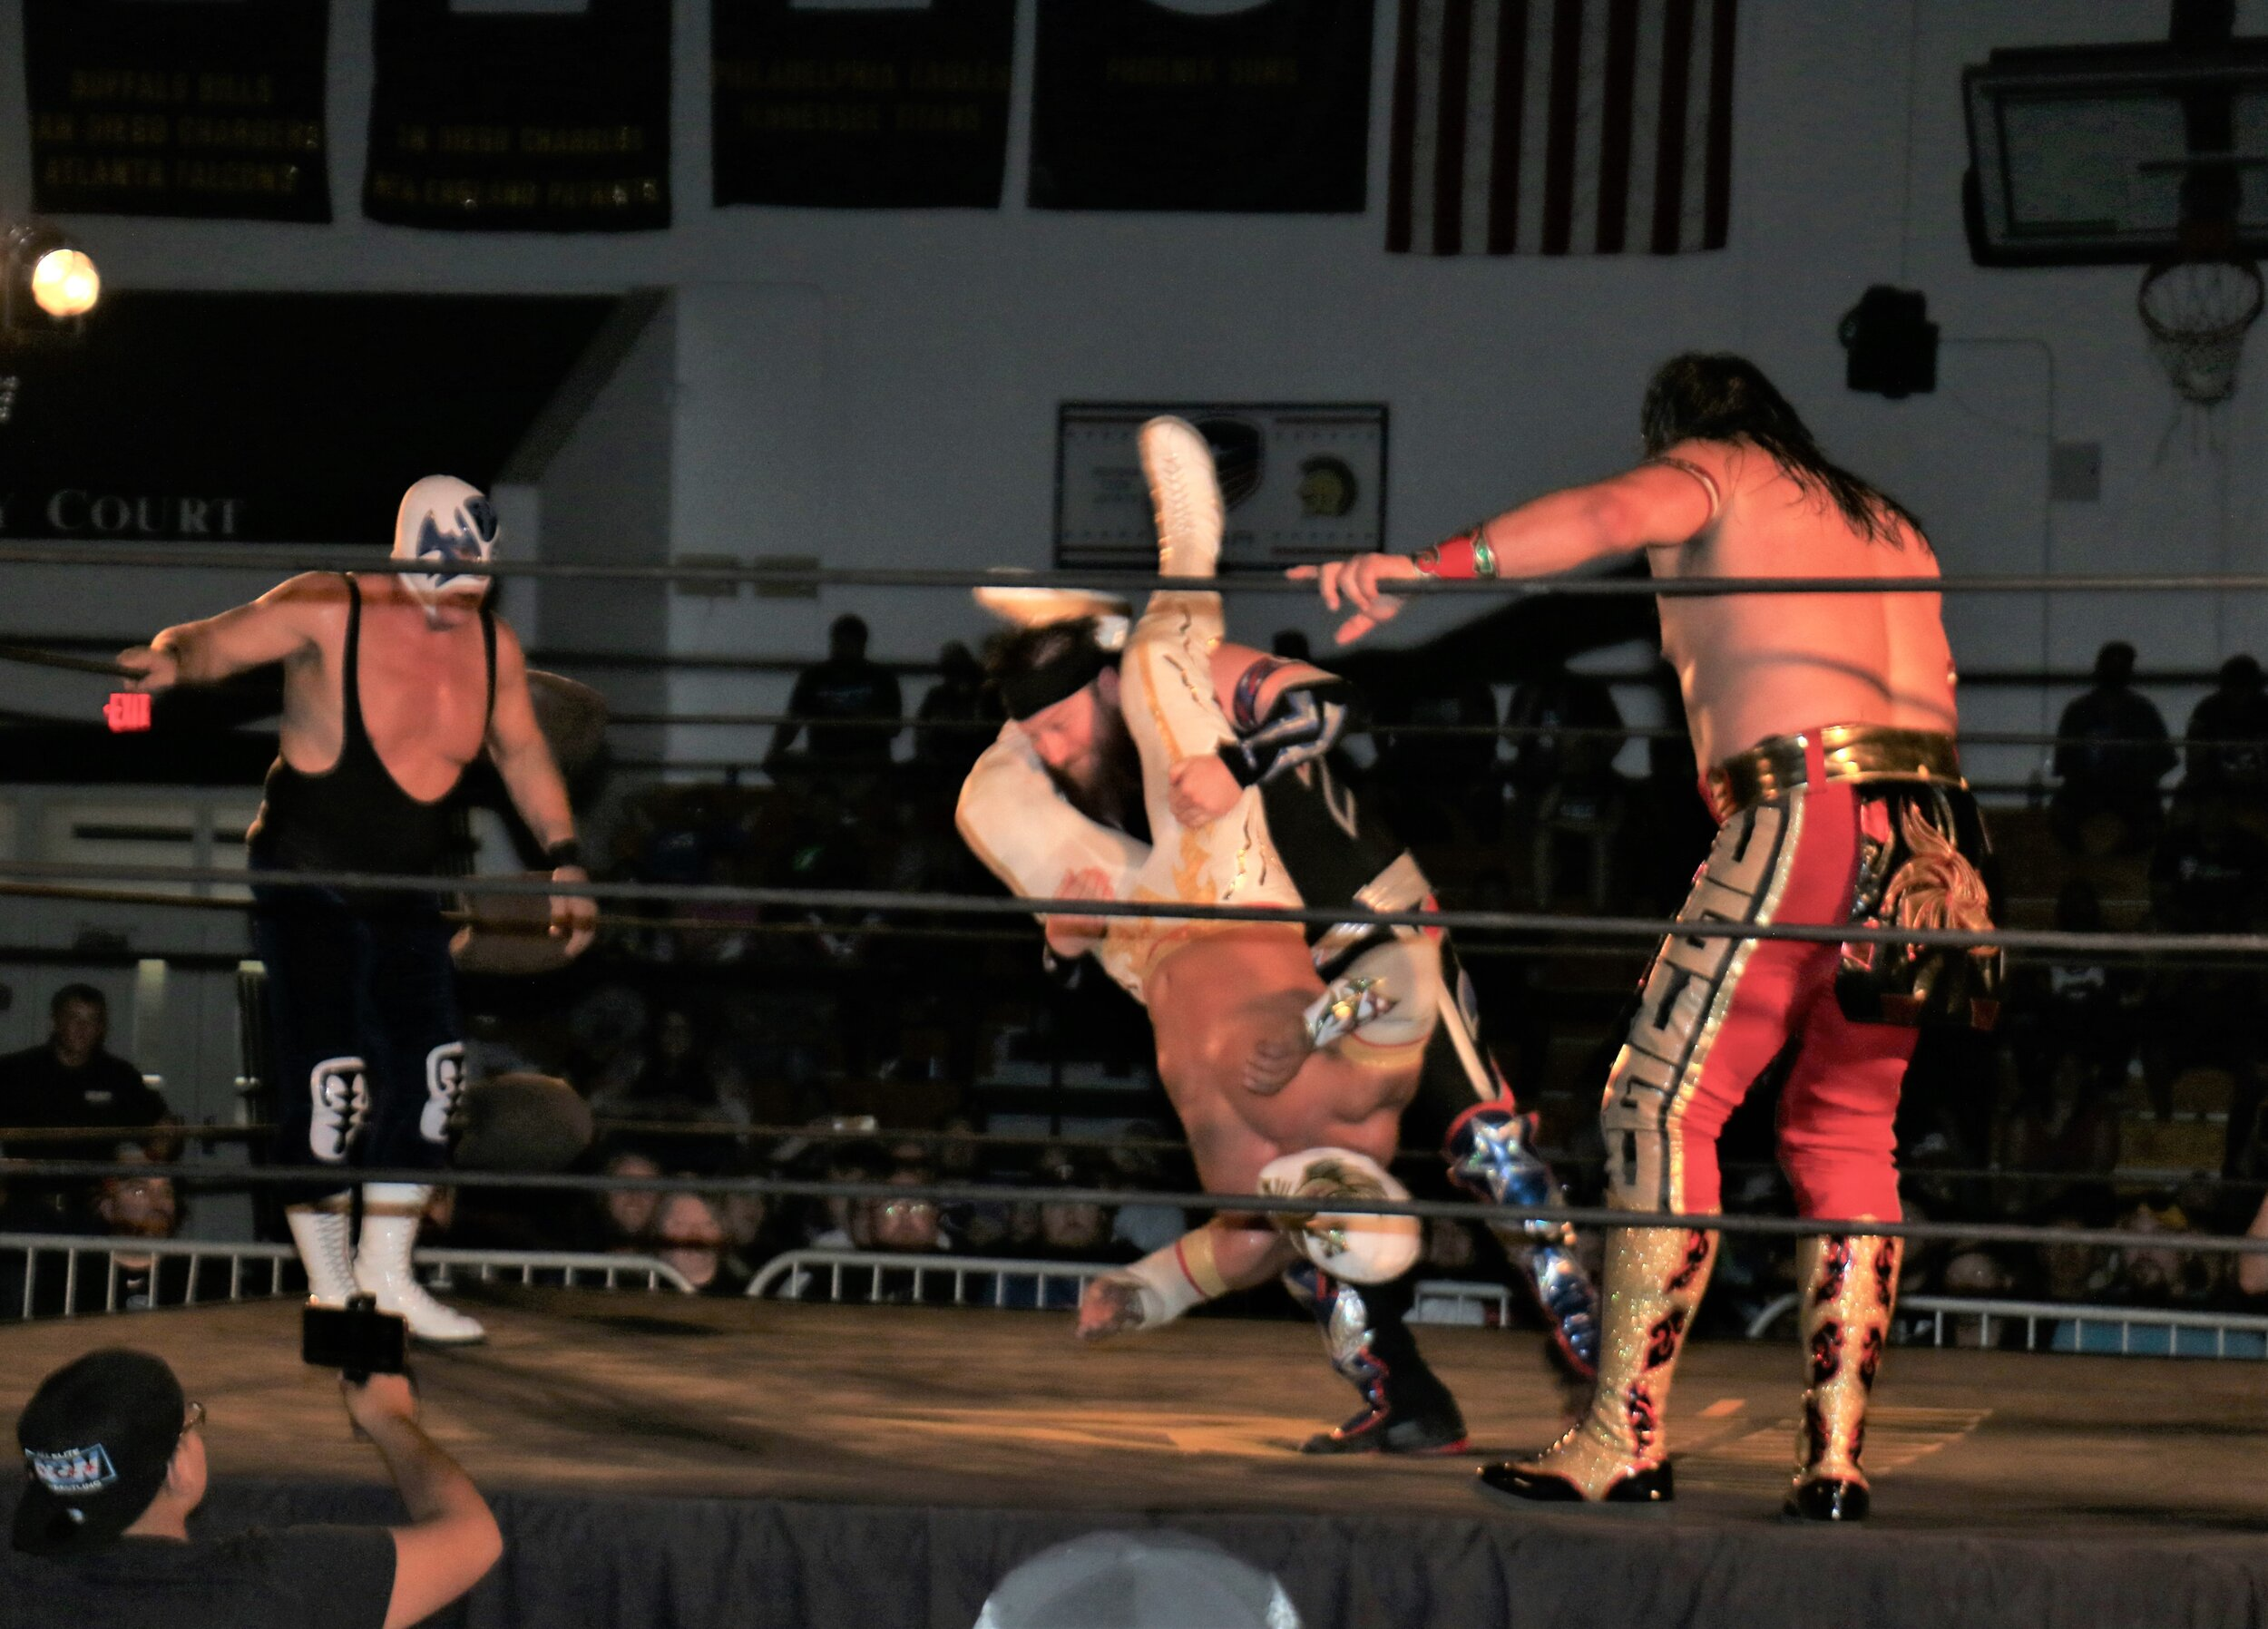 Caristico, center, takes over Gringo Loco, who stormed the ring to attack the luchadors.